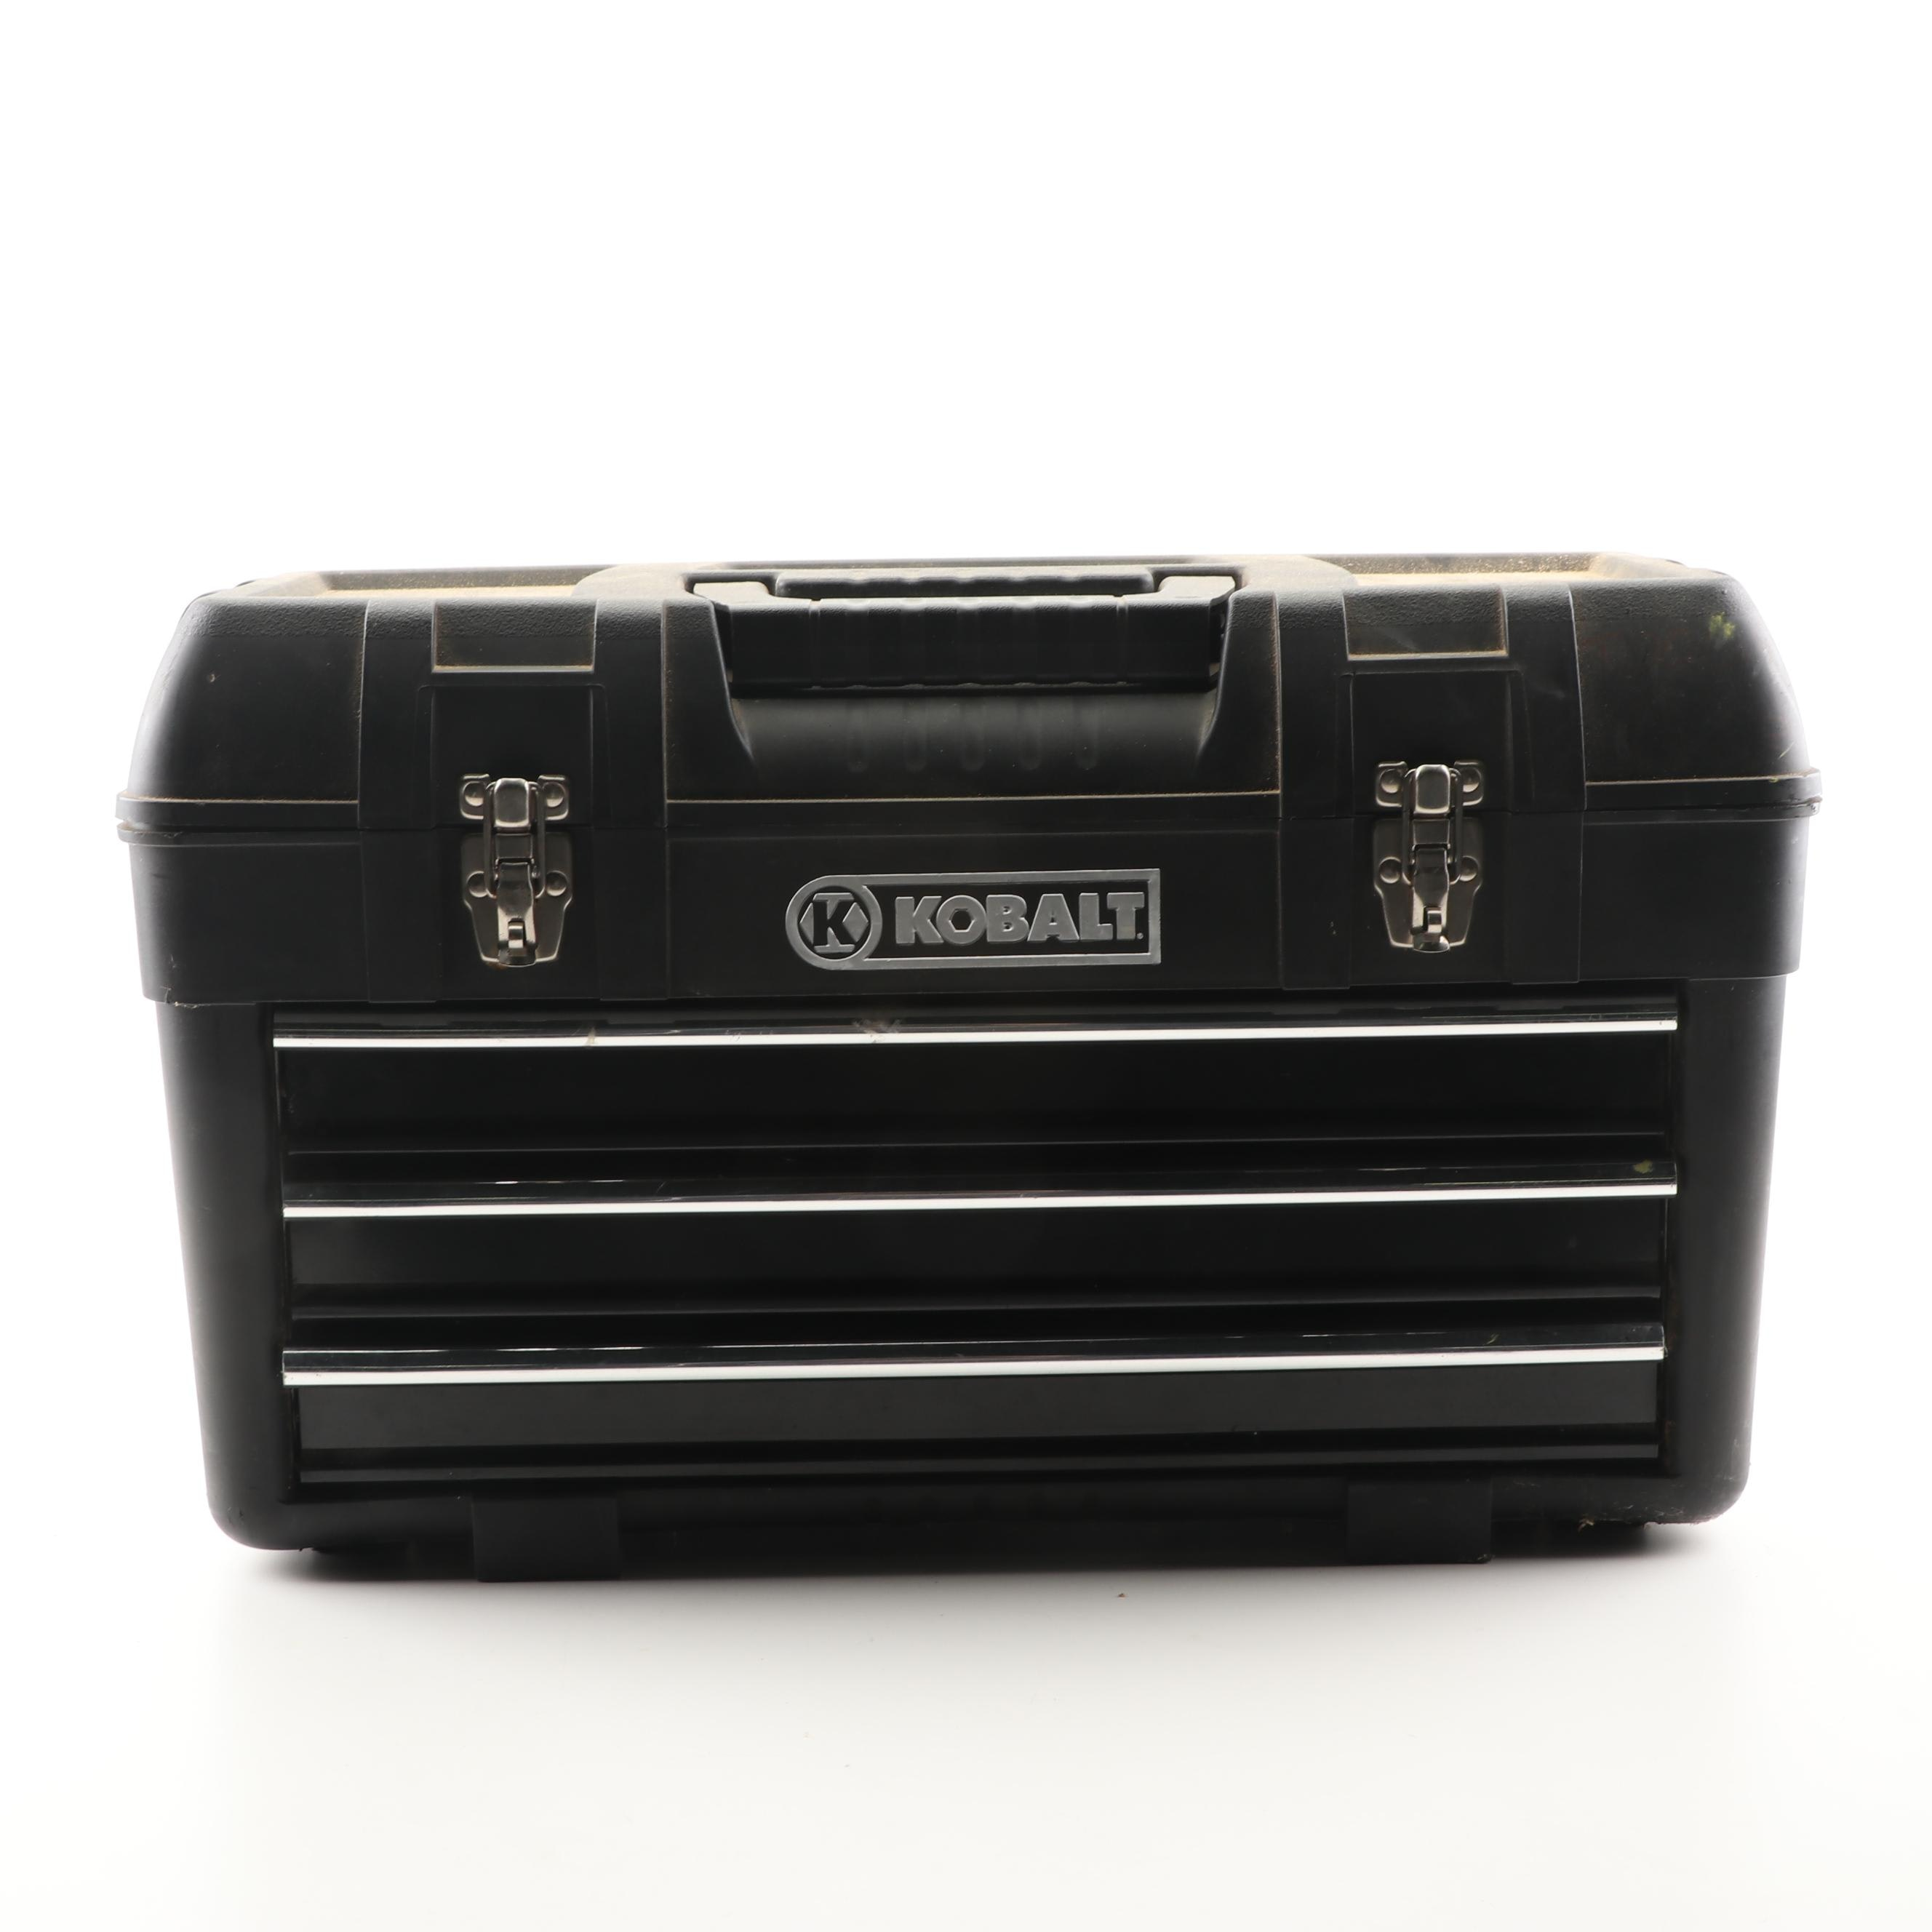 Kobalt Tool Box with Wrenches, Nailers, Screwdrivers and More